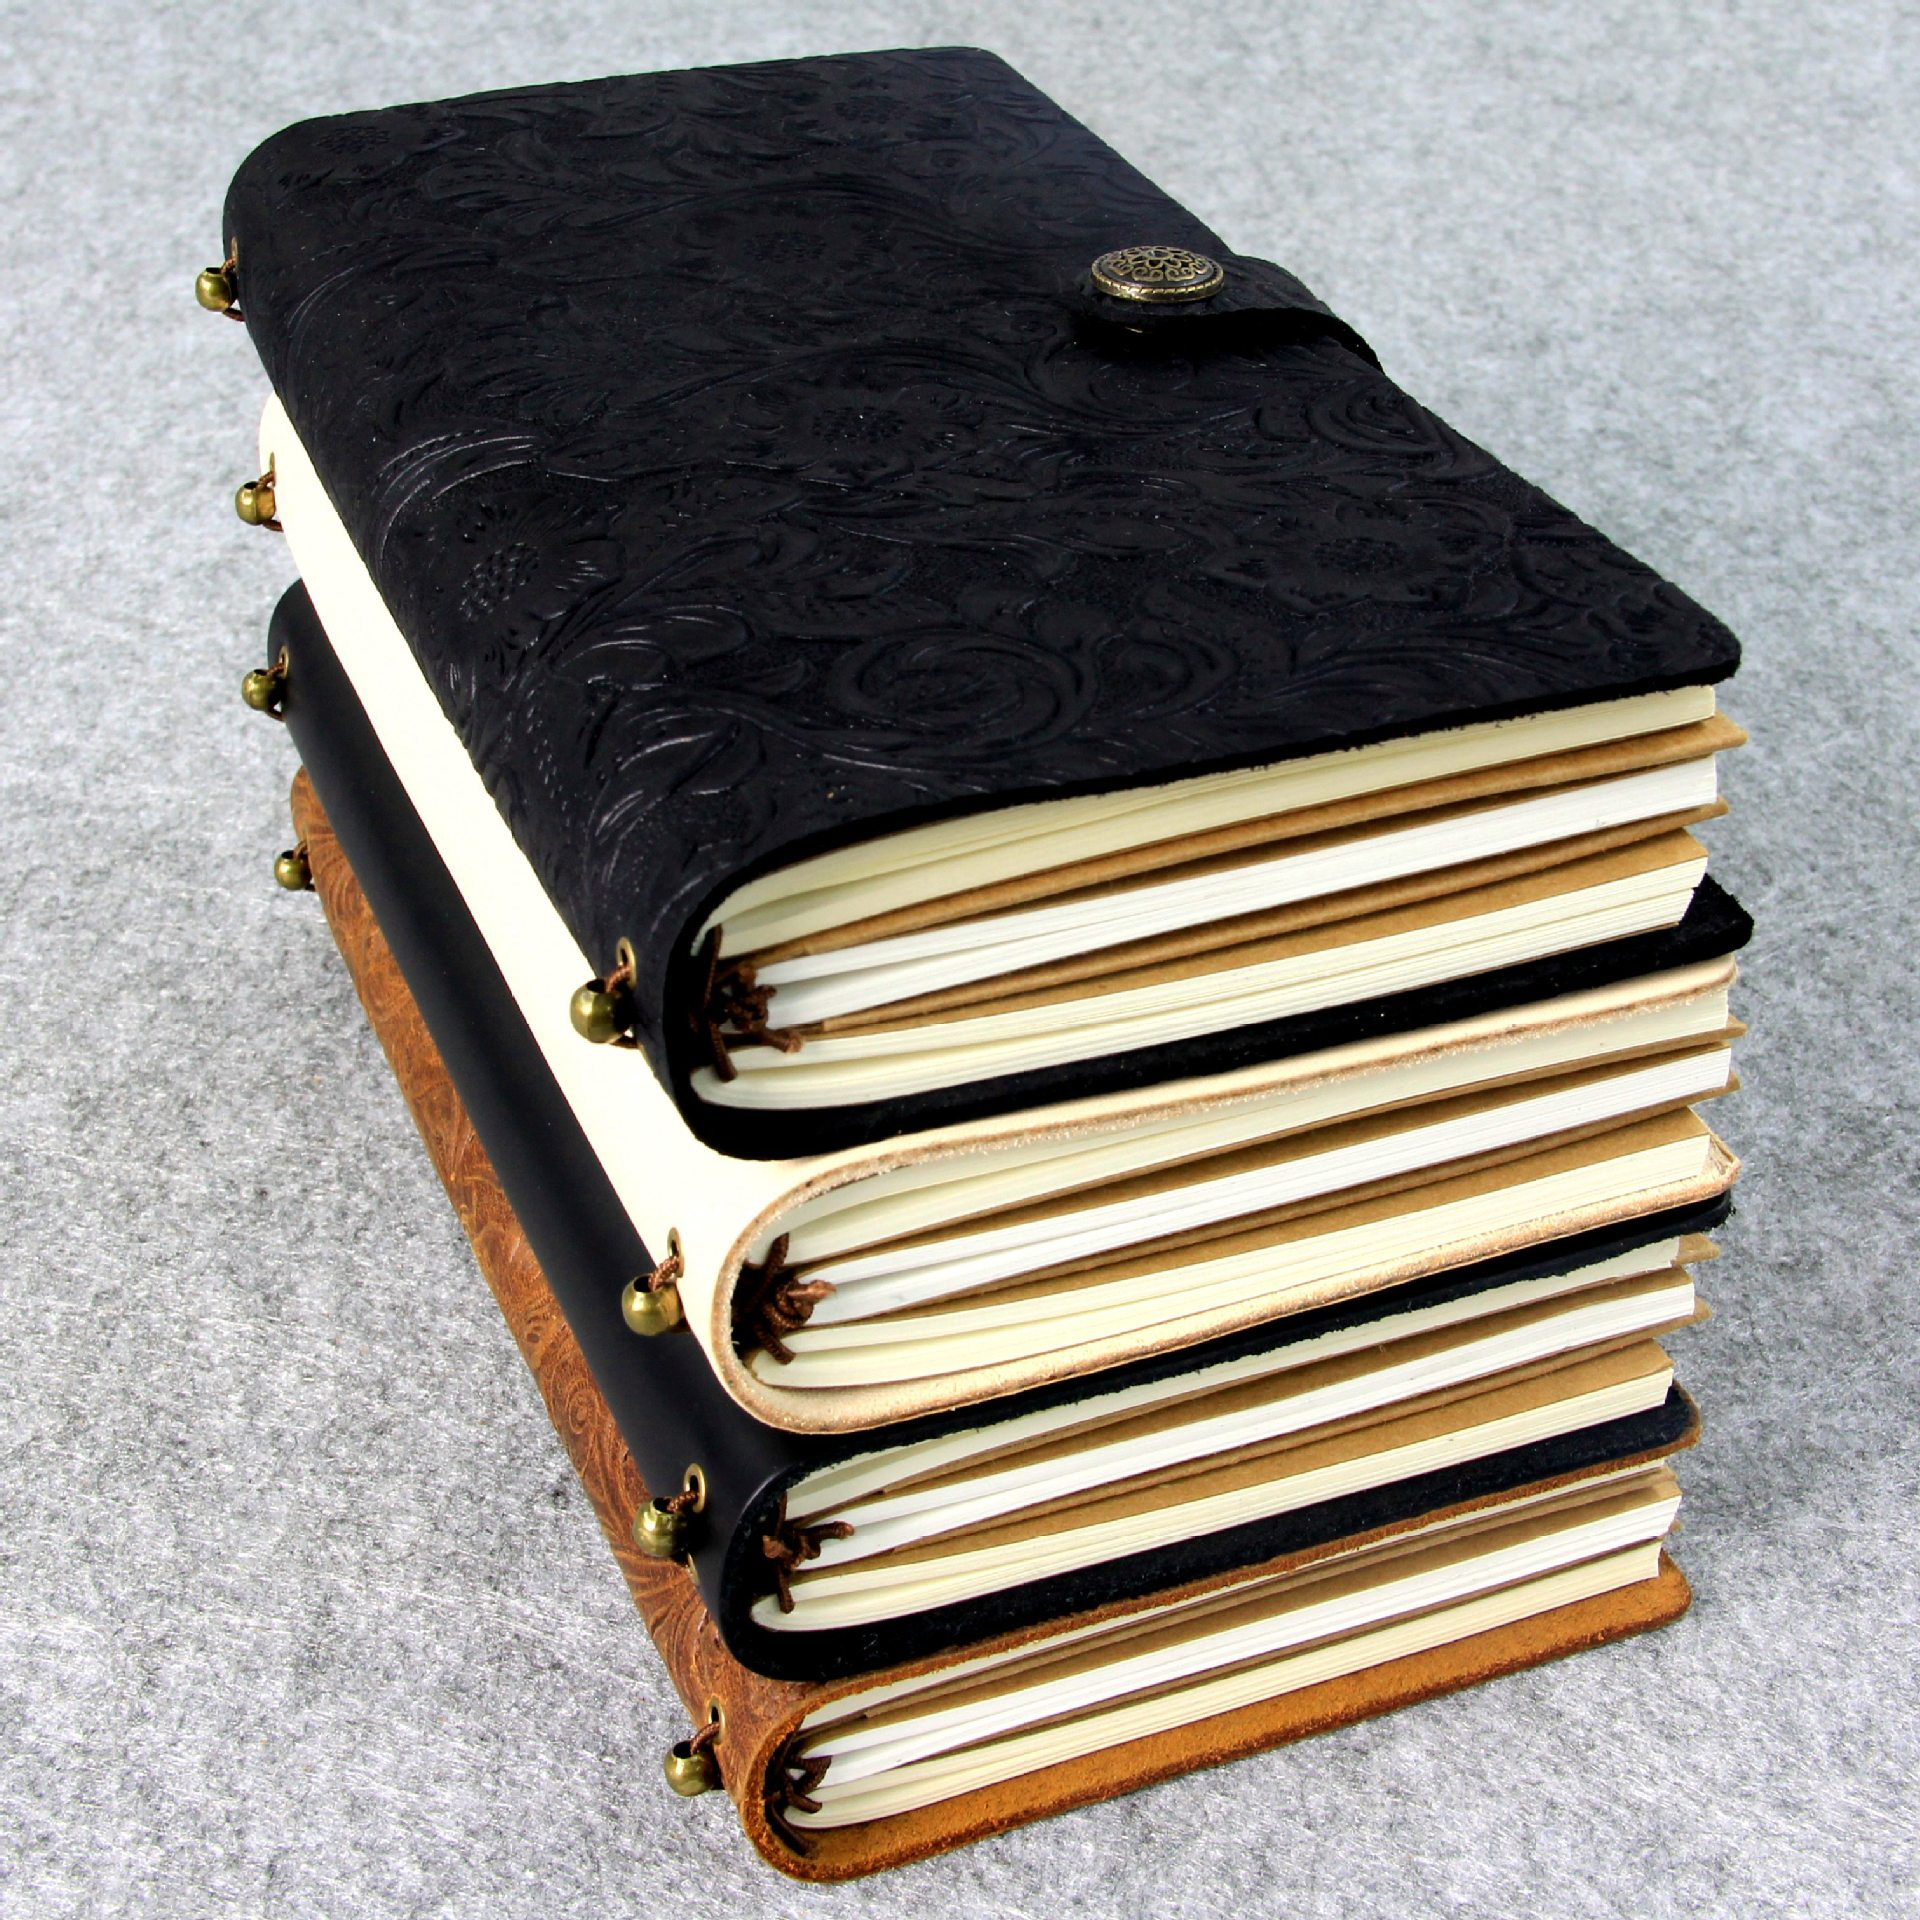 100% Genuine Leather Traveler's Notebook Diary Journal Vintage Handmade Cowhide Gift Business Office Notebook 13x22cm